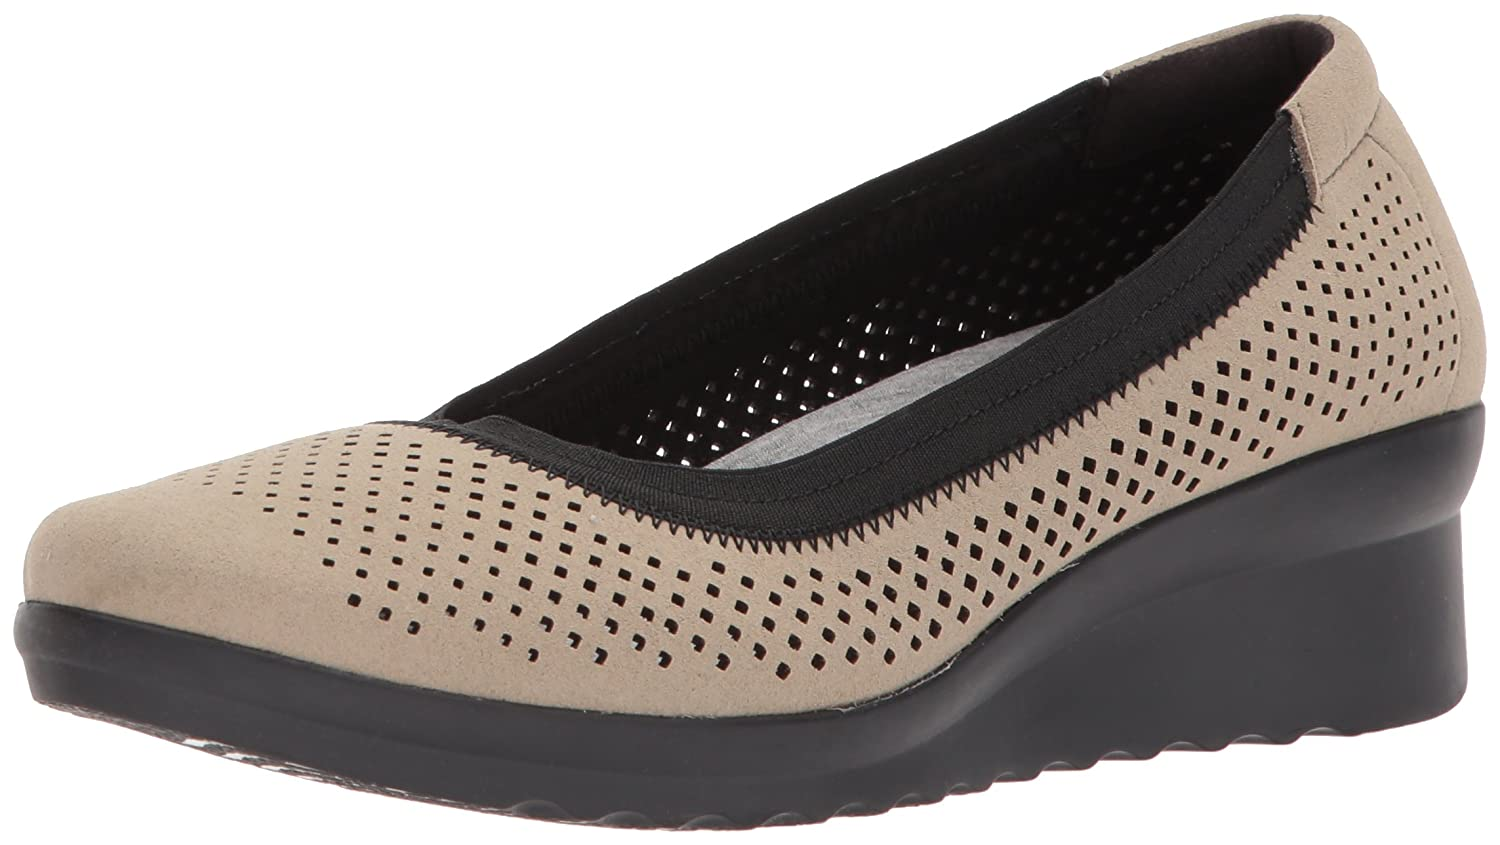 Clarks Damen Caddell Trail    e9928a